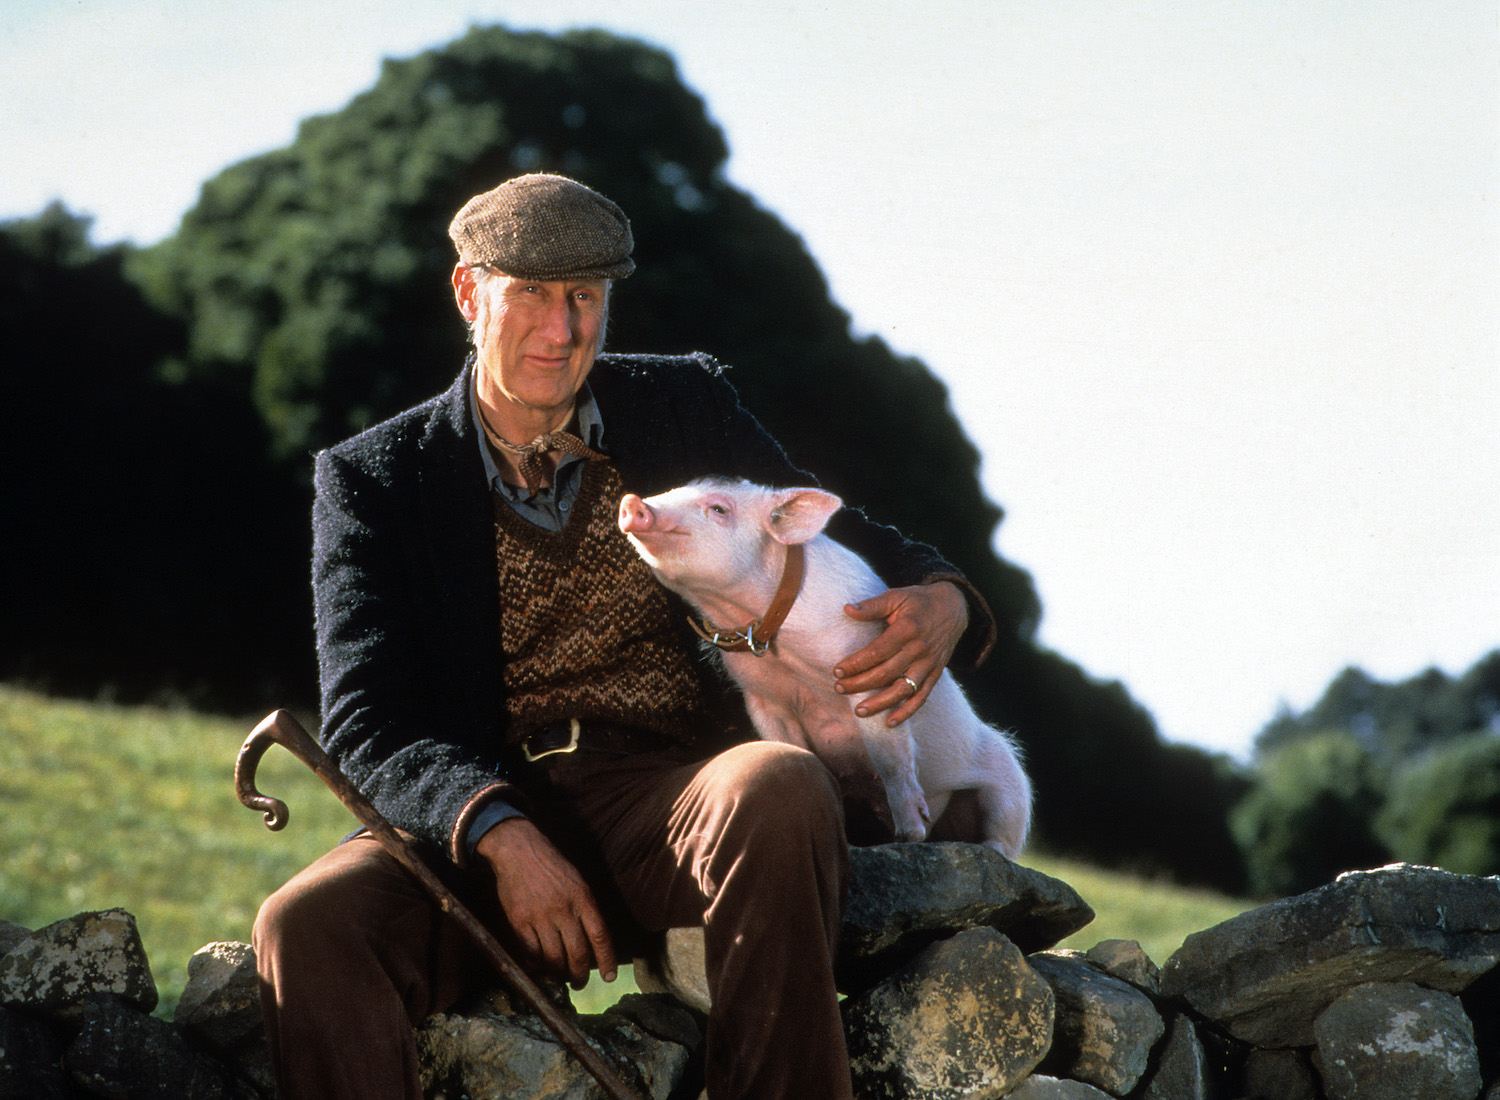 Actor James Cromwell with the pig in the movie Babe